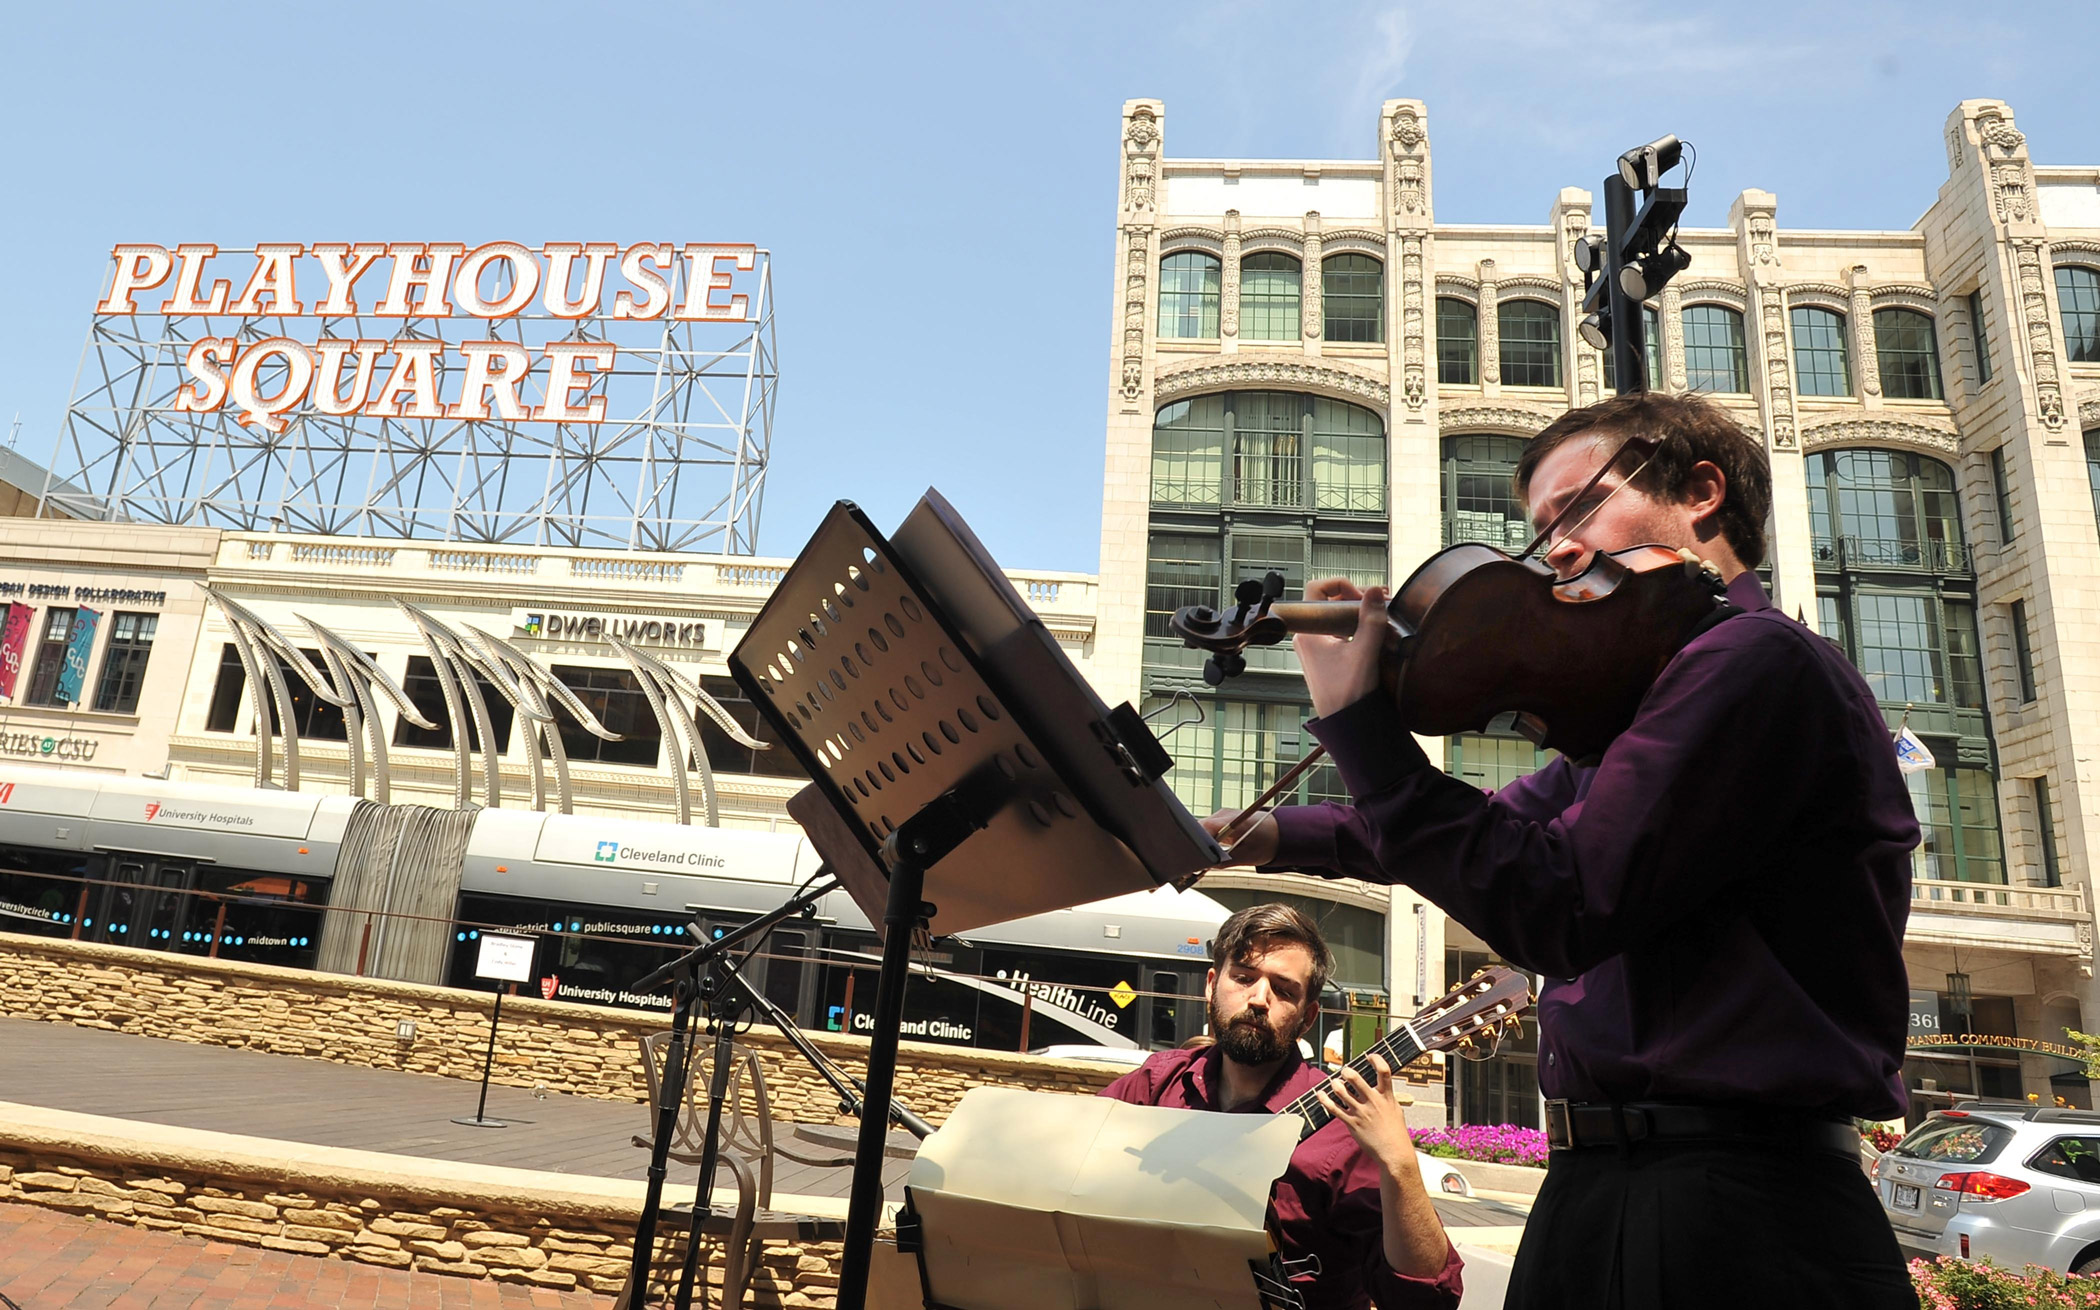 Music students perform downtown outside of playhouse square